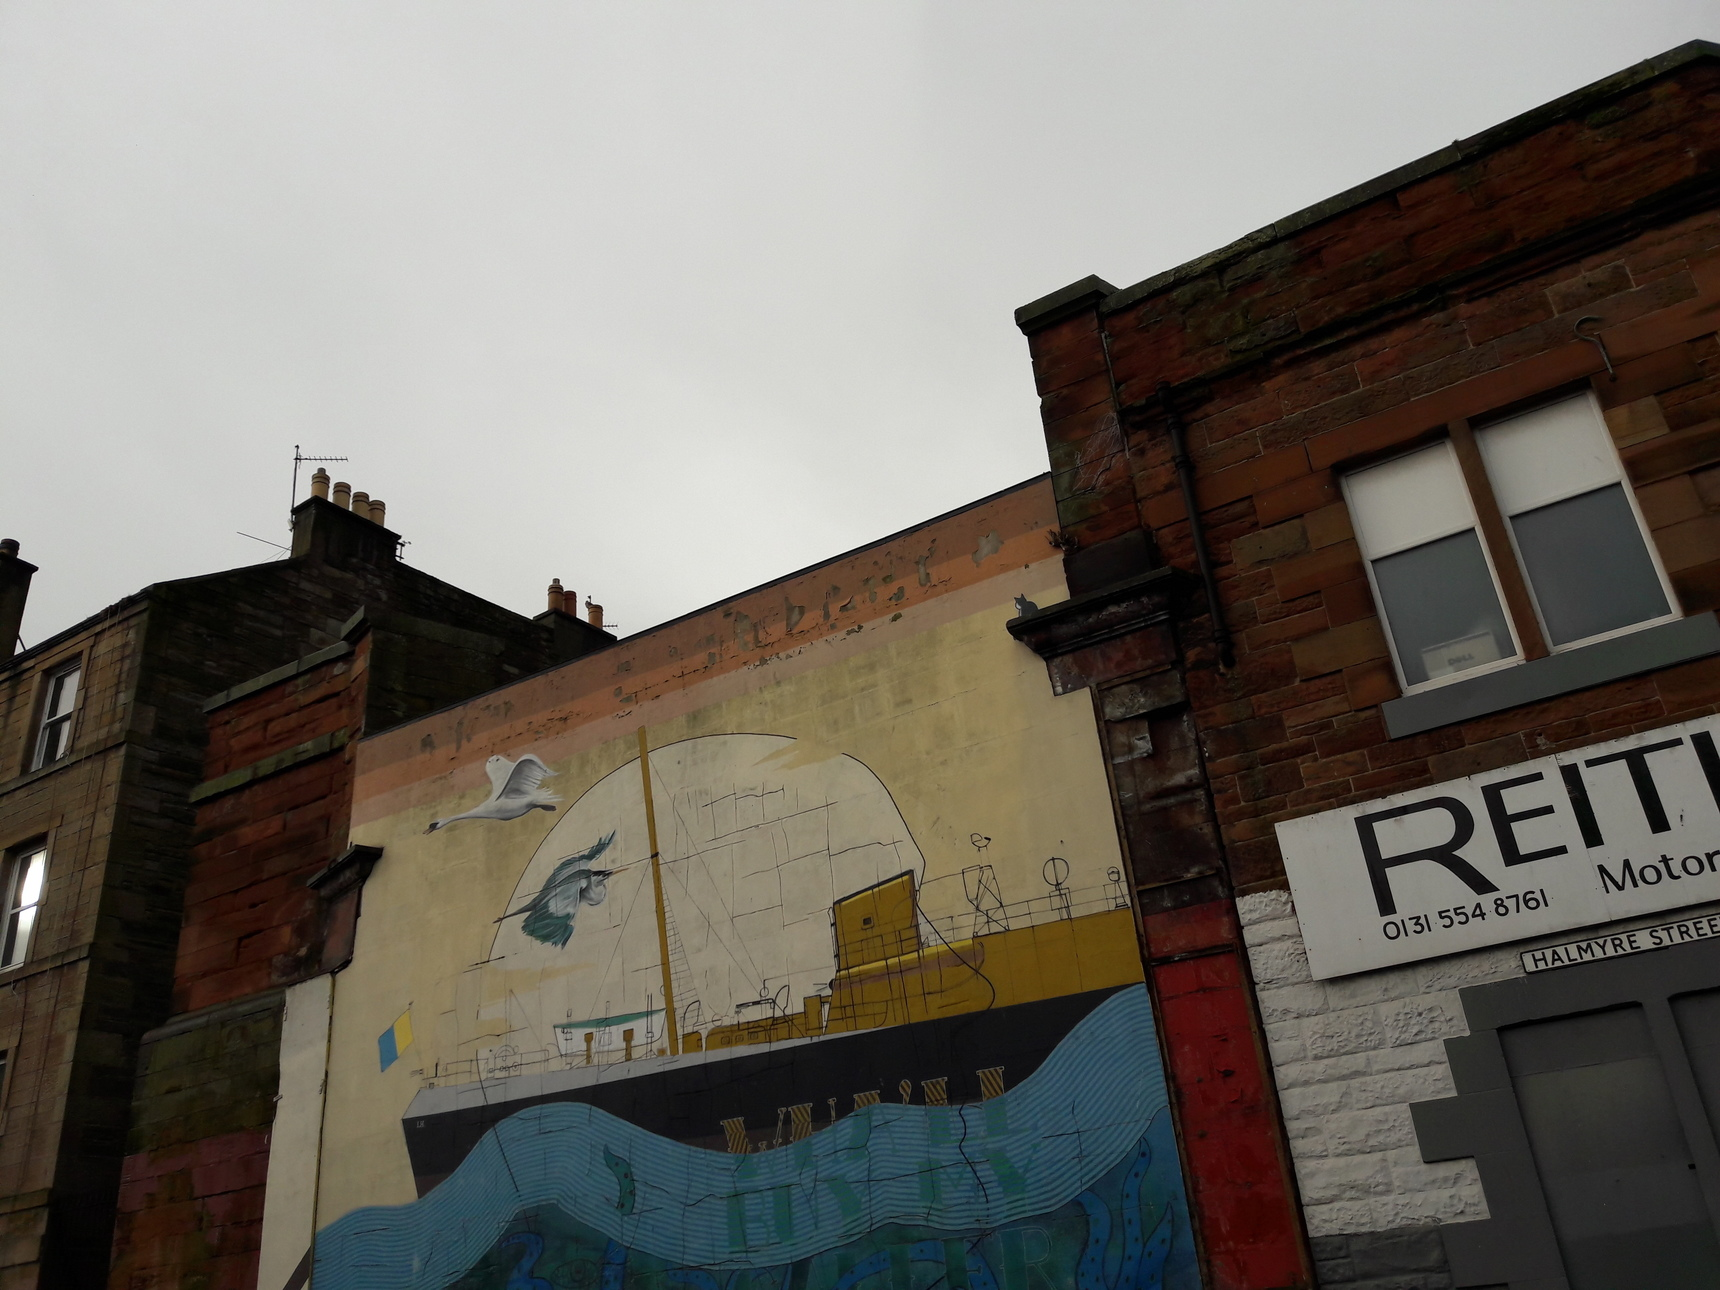 Mural at Halmyre Street, Leith